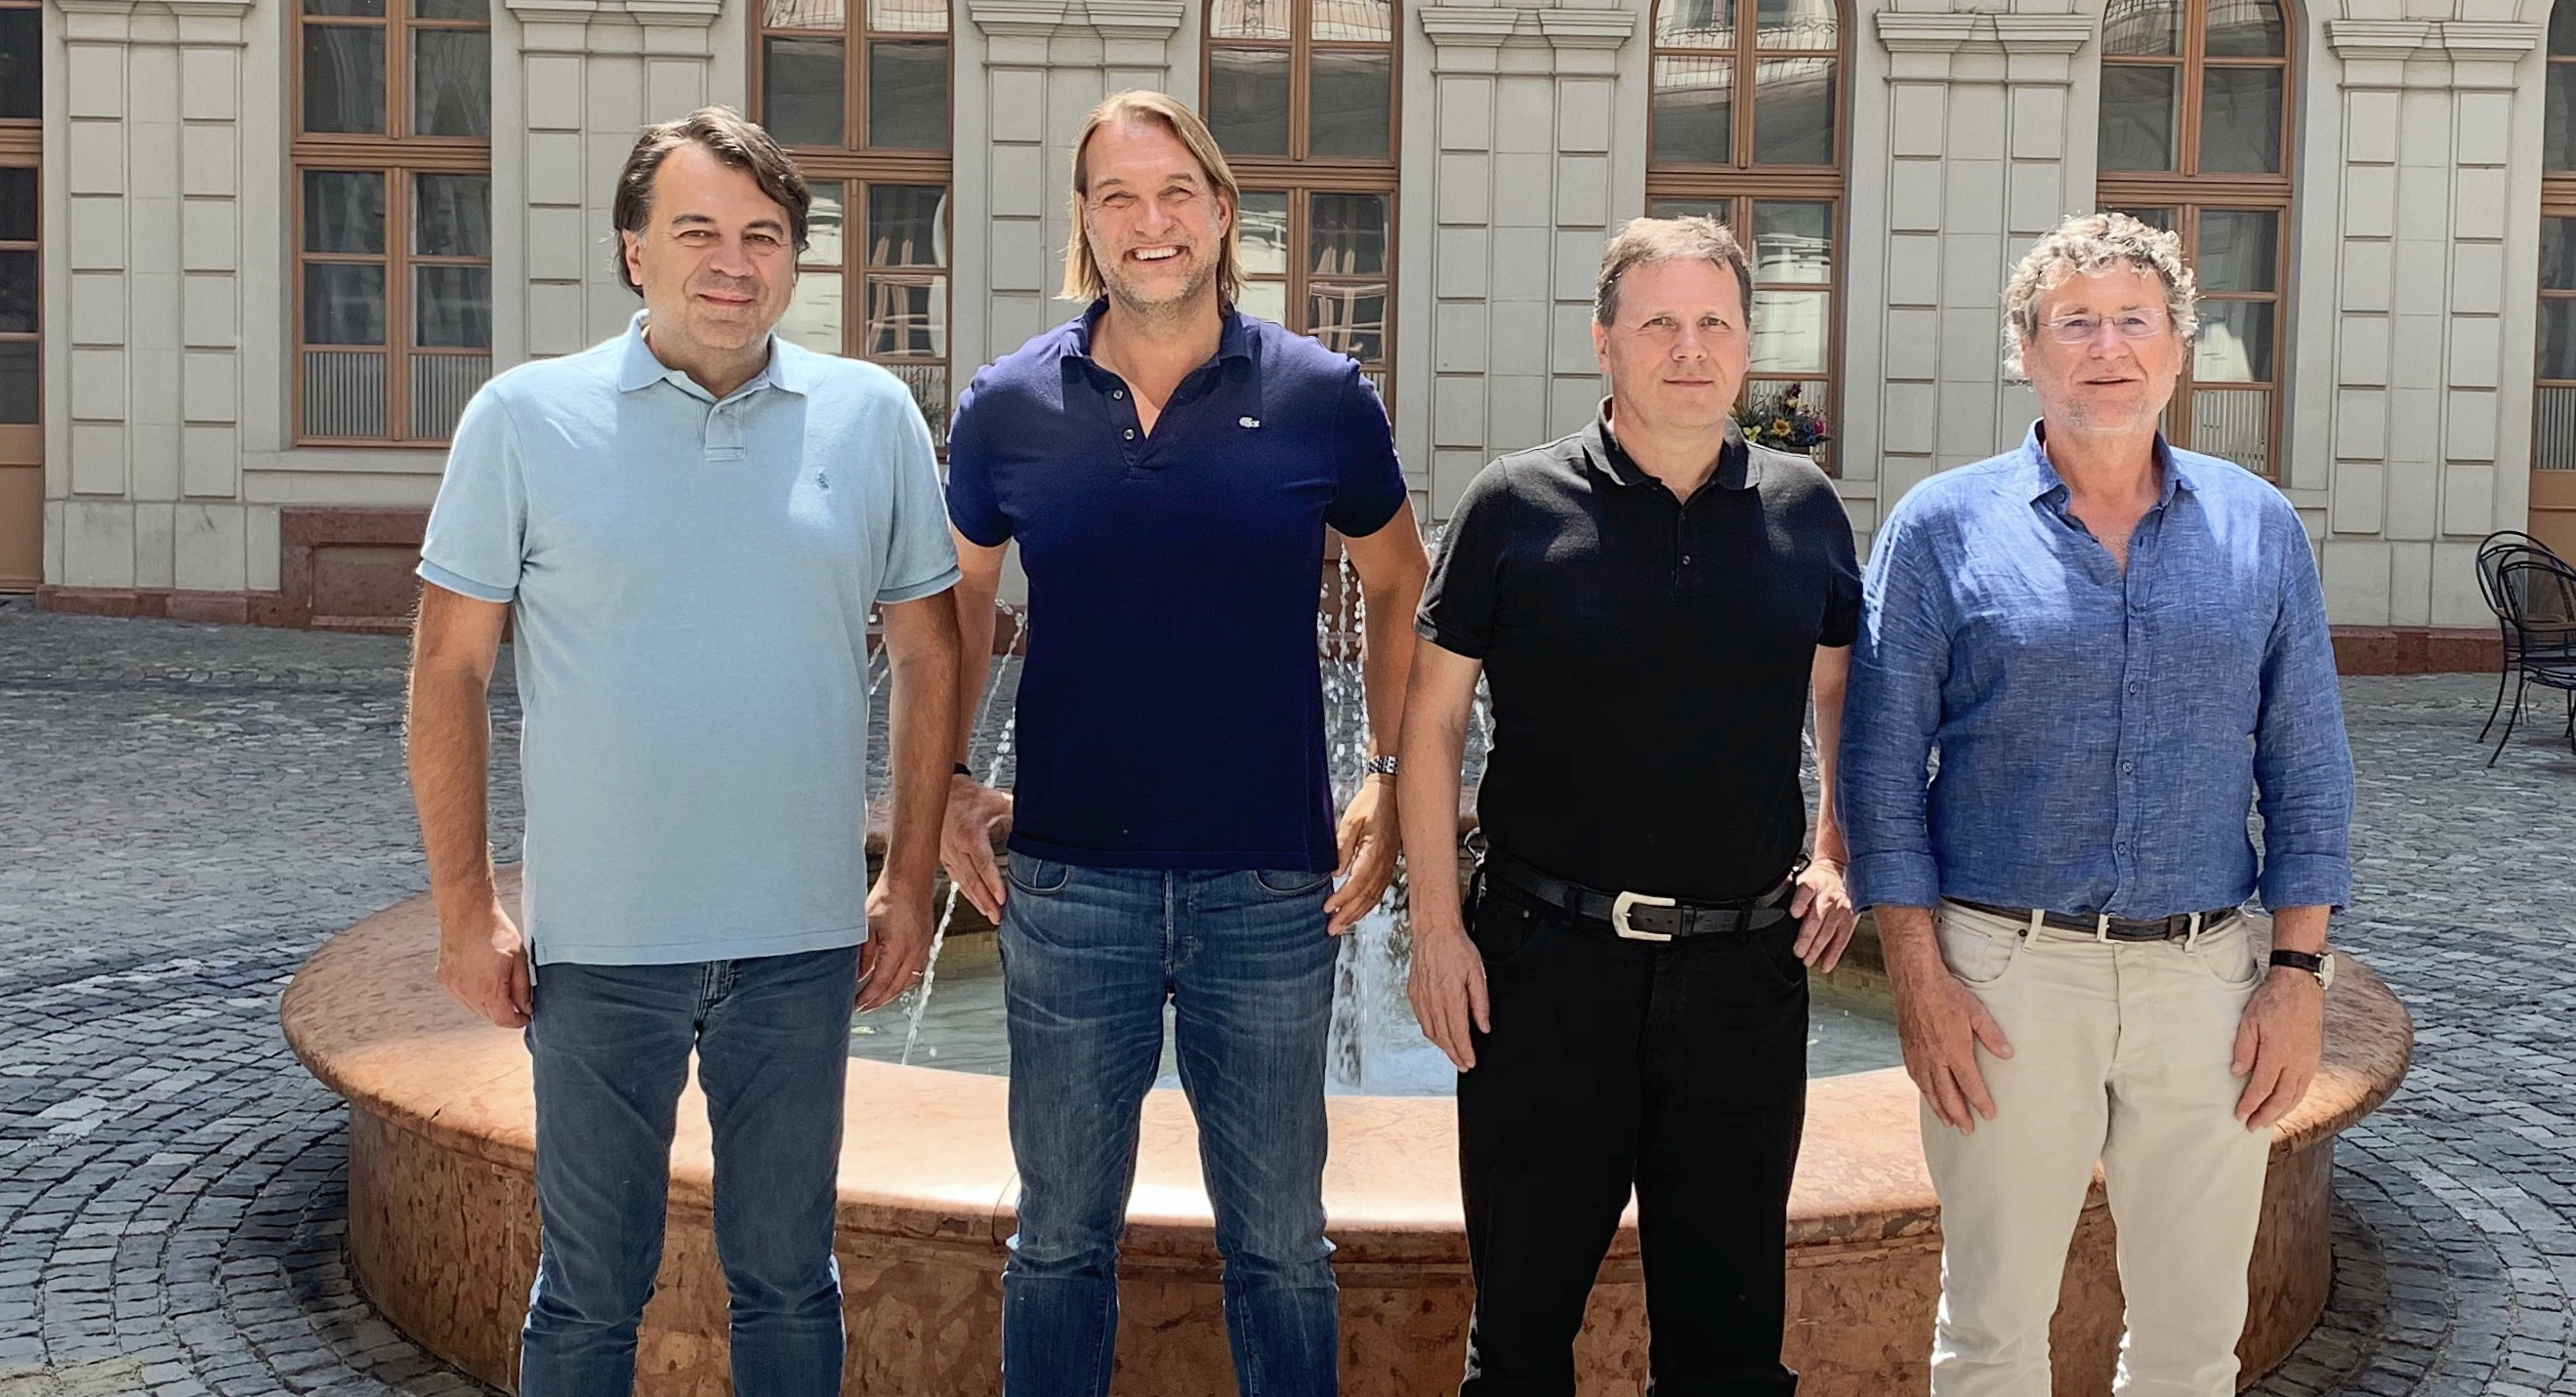 Dejan Popovic, Co-founder and Director, New Frontier Holding Gmbh Uwe Bergmann, CEO, COSMO CONSULT Group Herbert Breitler, CFO, COSMO CONSULT Group Dr. Schvarcz Zoltán, Founder and Owner of XAPT Solutions Kft.